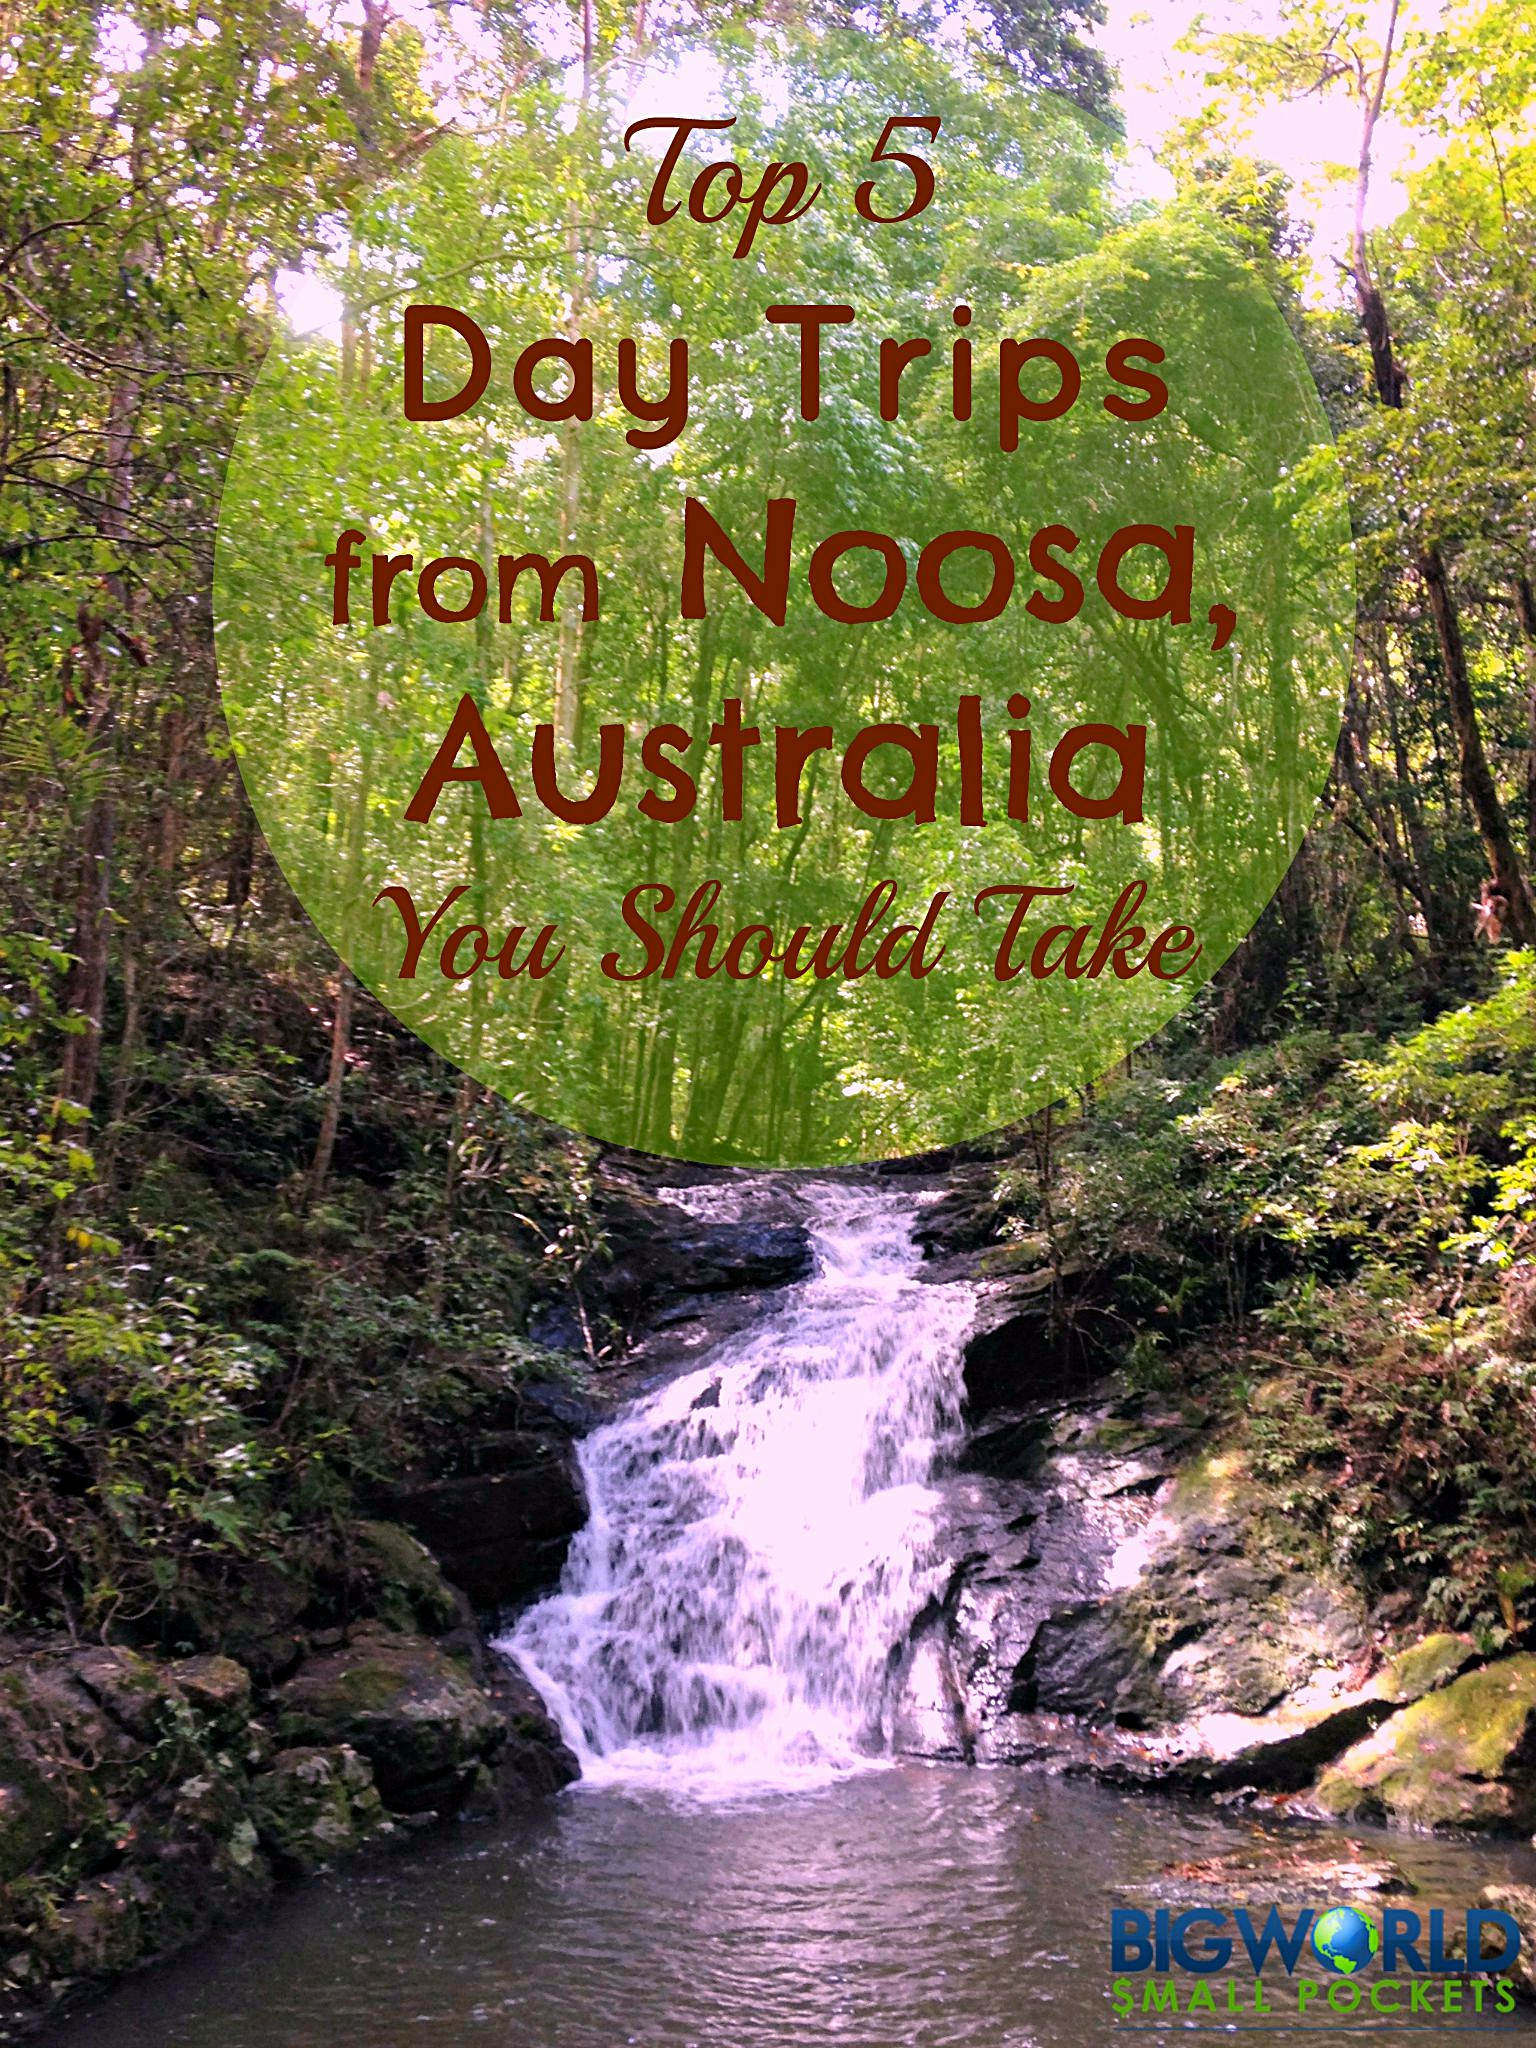 5 Day Trips from Noosa, Australia You Should Take {Big World Small Pockets}